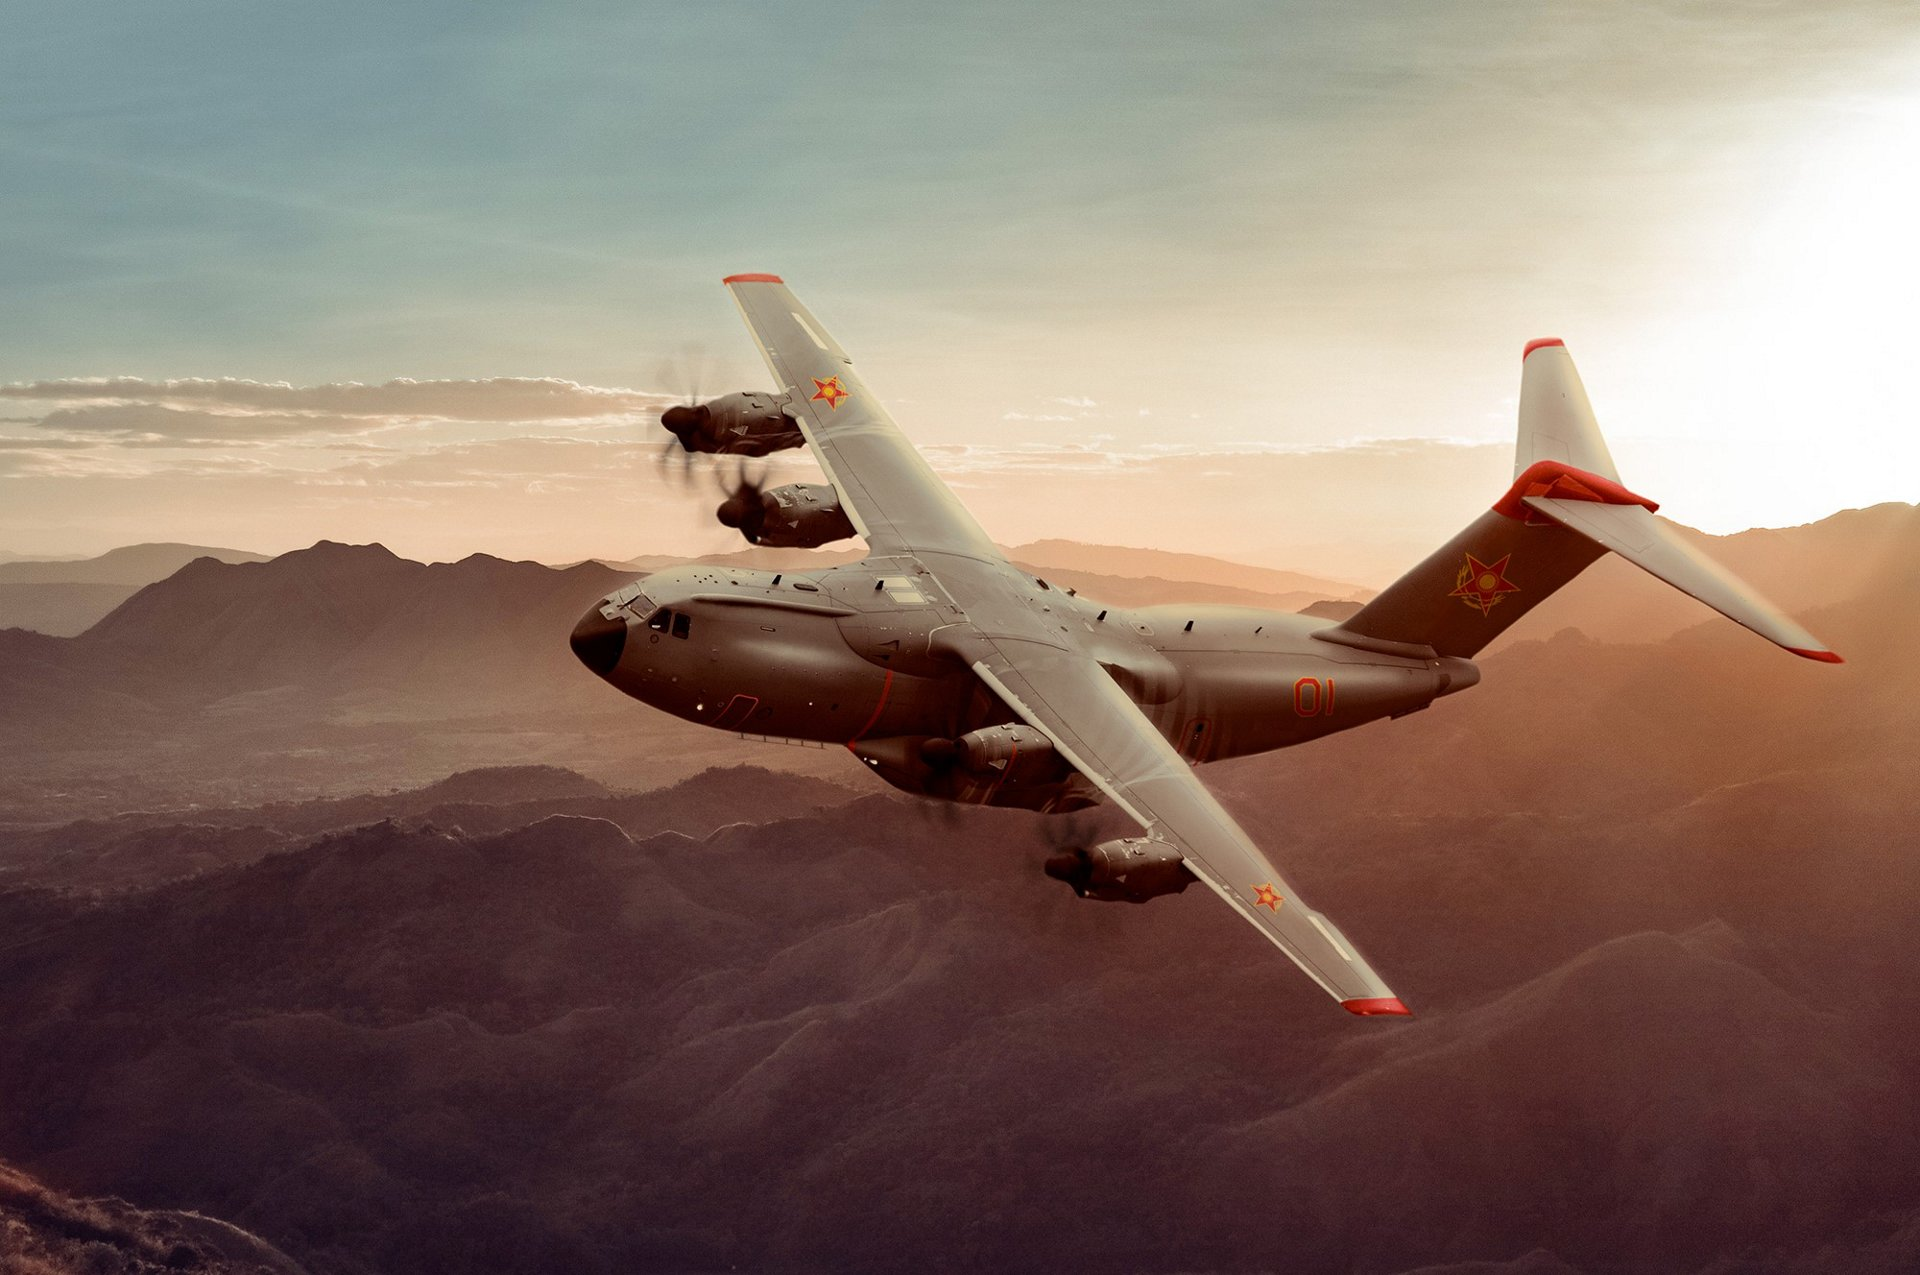 The Republic of Kazakhstan has placed an order for two Airbus A400M aircraft and becomes the ninth operator together with Germany, France, United Kingdom, Spain, Turkey, Belgium, Malaysia and Luxembourg.